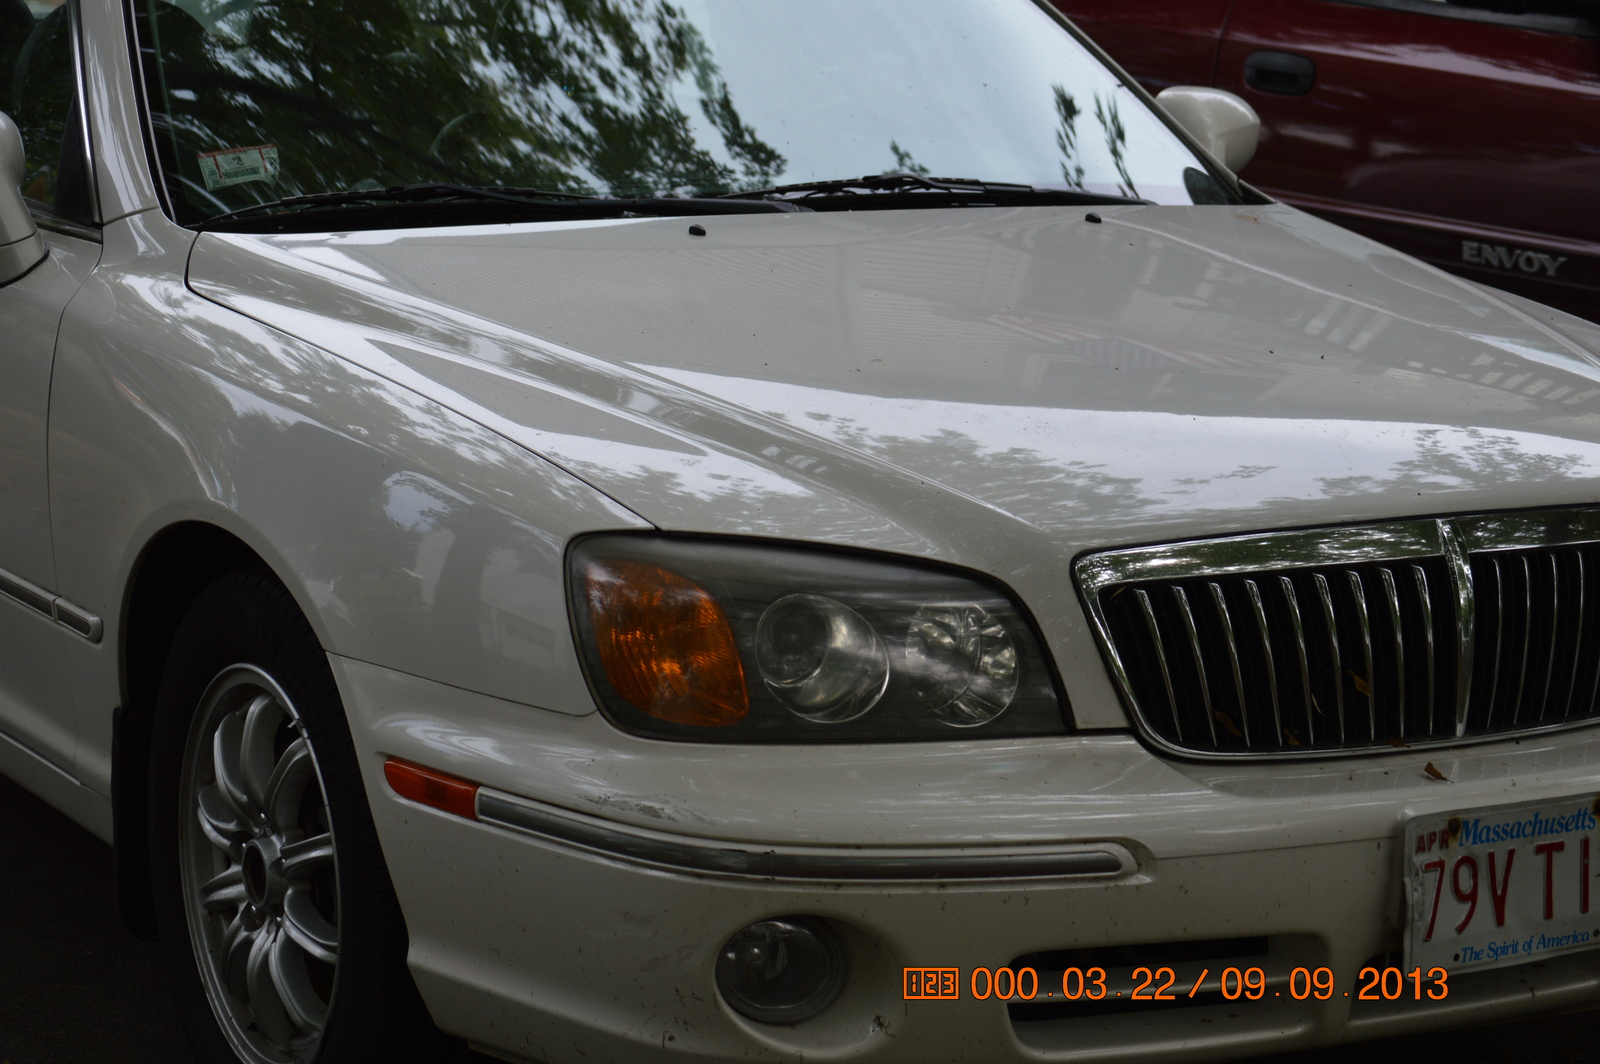 Picture of 2002 Hyundai XG350 4 Dr L Sedan